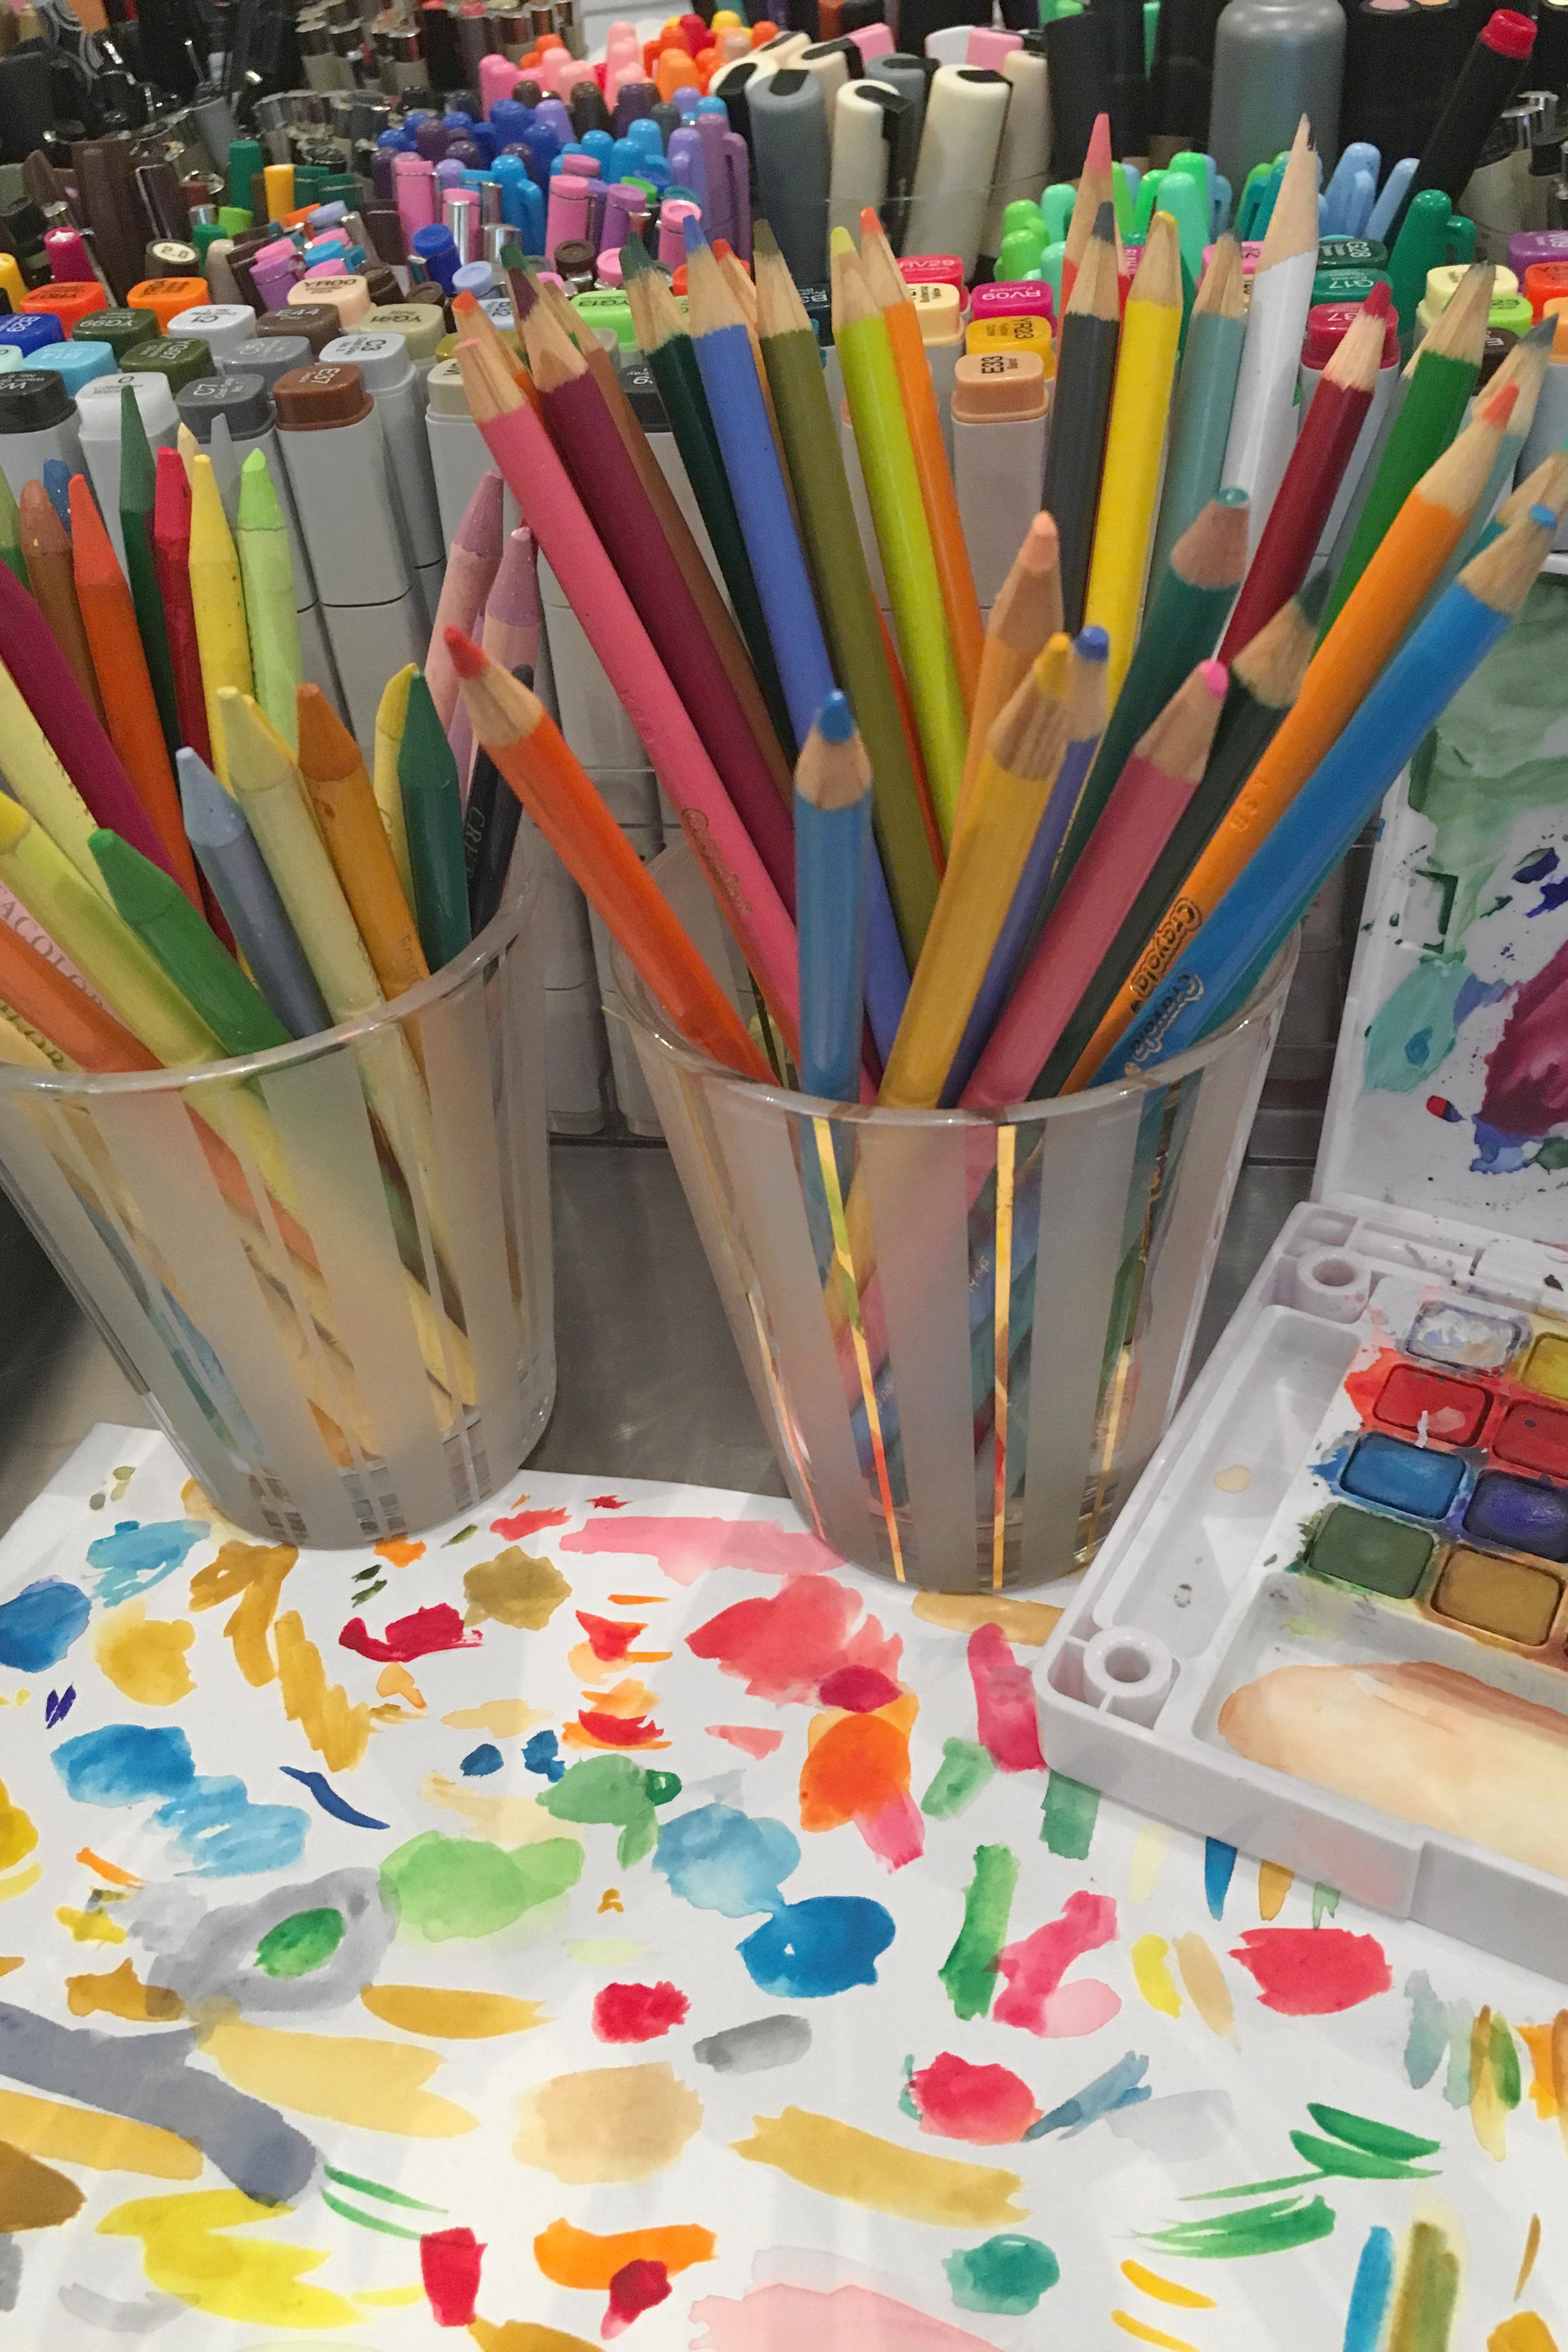 A desk full of rainbow watercolors colored pencils and a